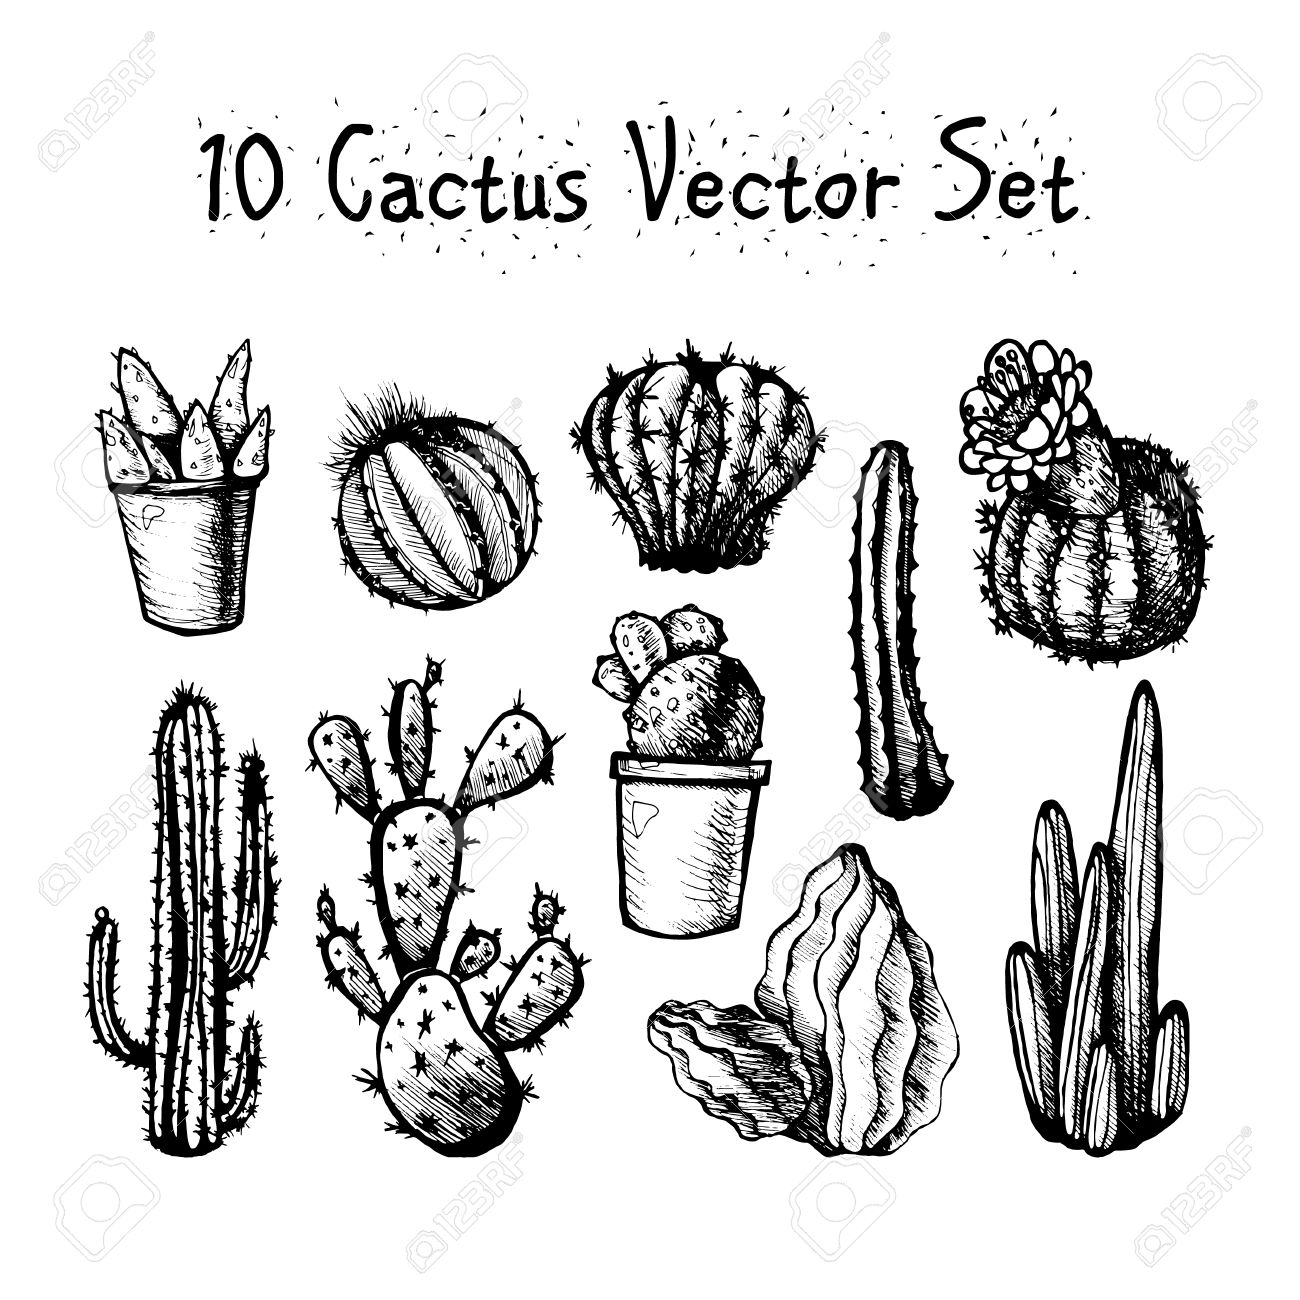 cactus drawing stuff done right drawing drawing cactus